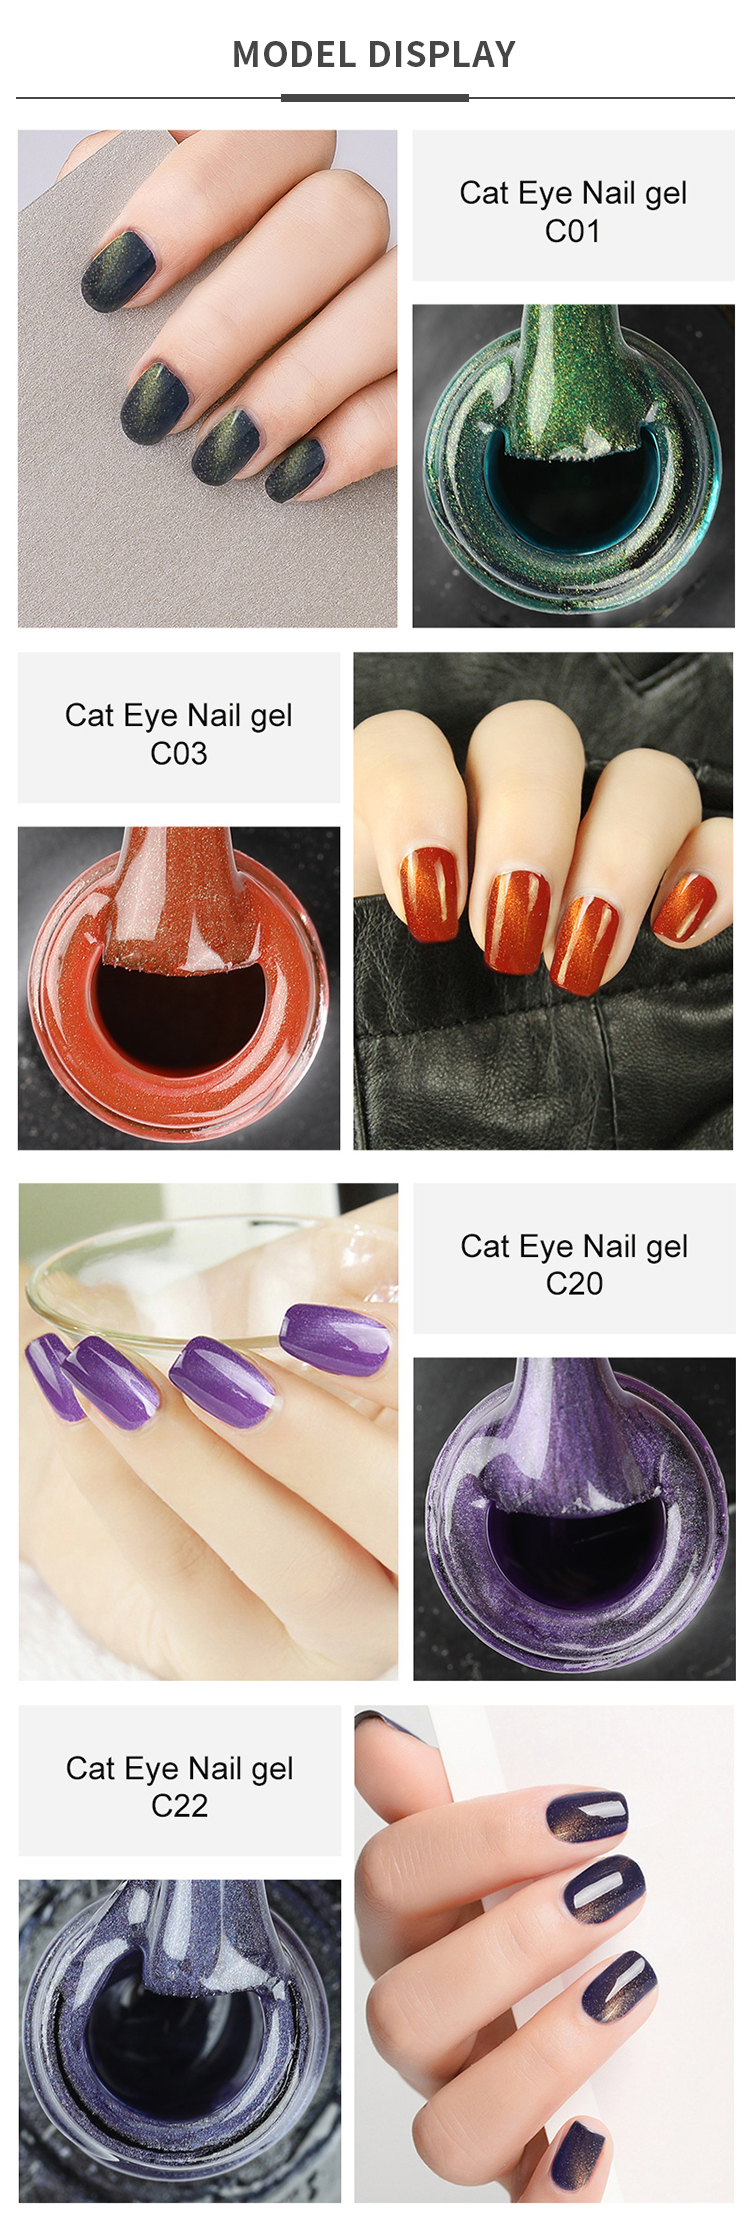 Rosalind 10ml 3D magnet cat eye color uv led gel polish soak off nail art cat eye gel nail polish for wholesale